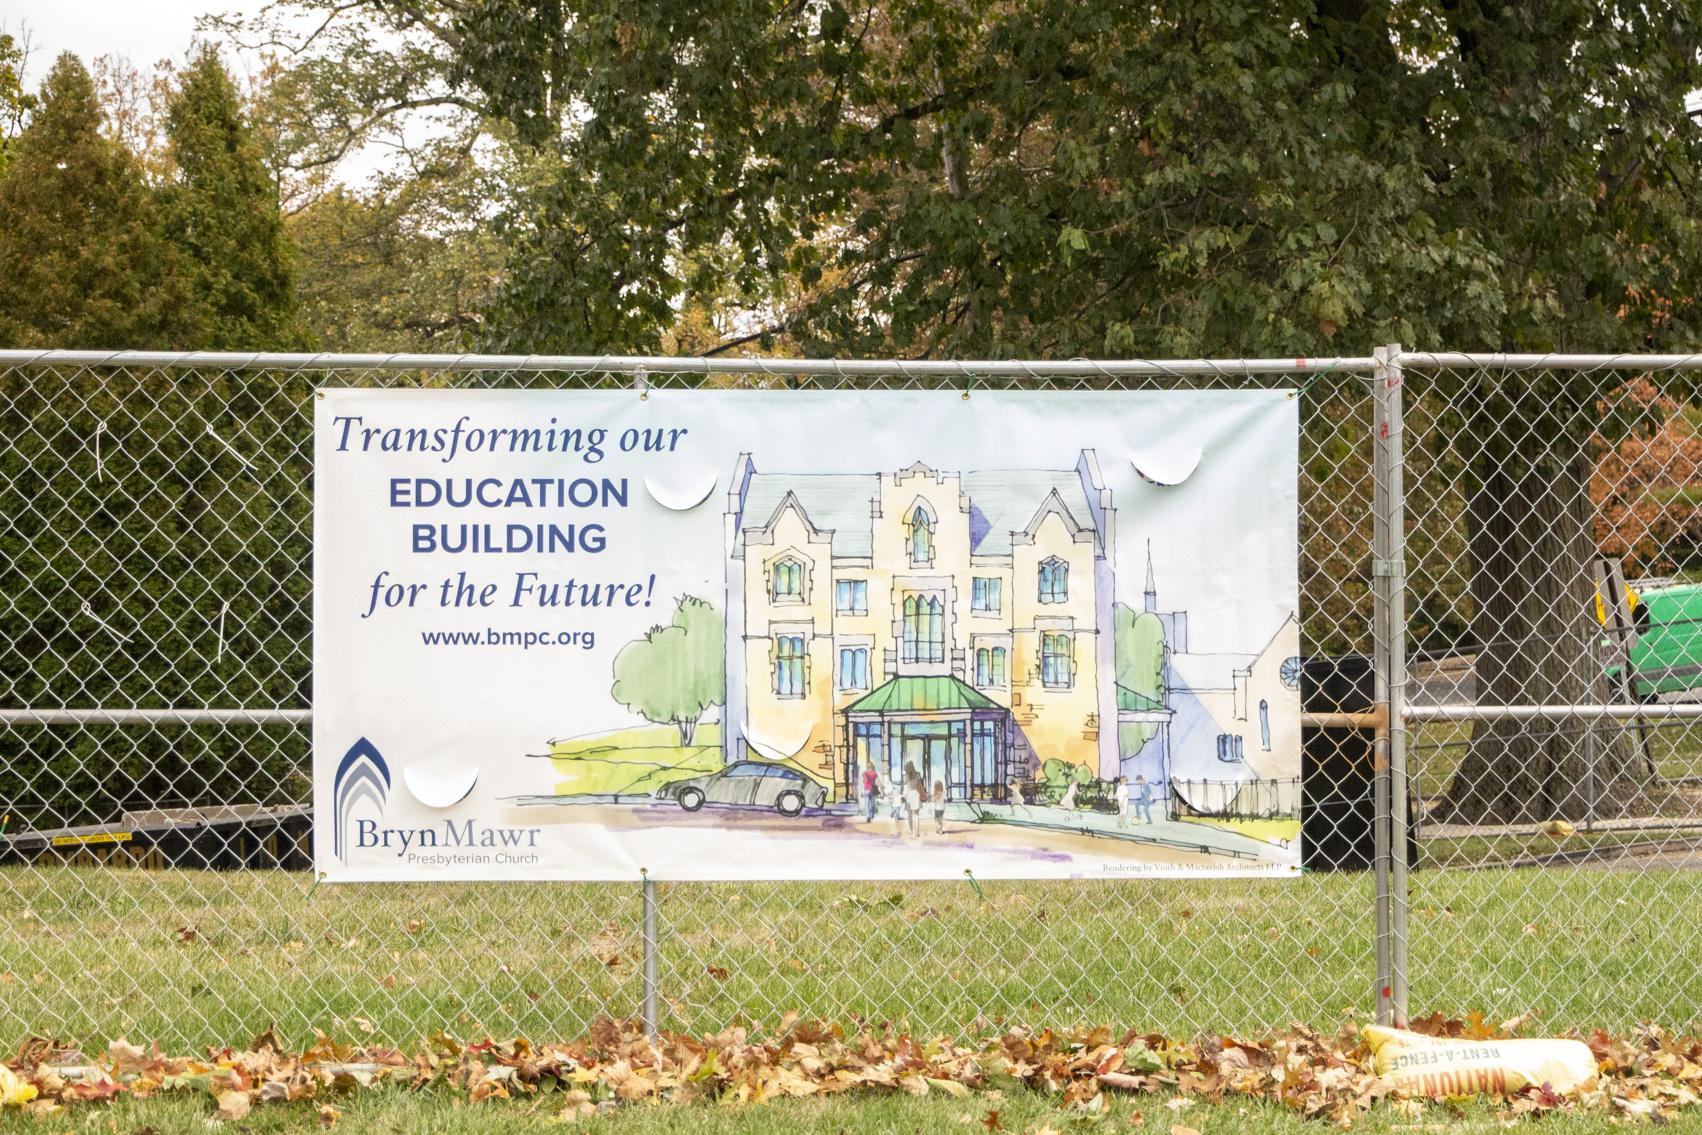 Transforming our Education Building for the Future! Sign